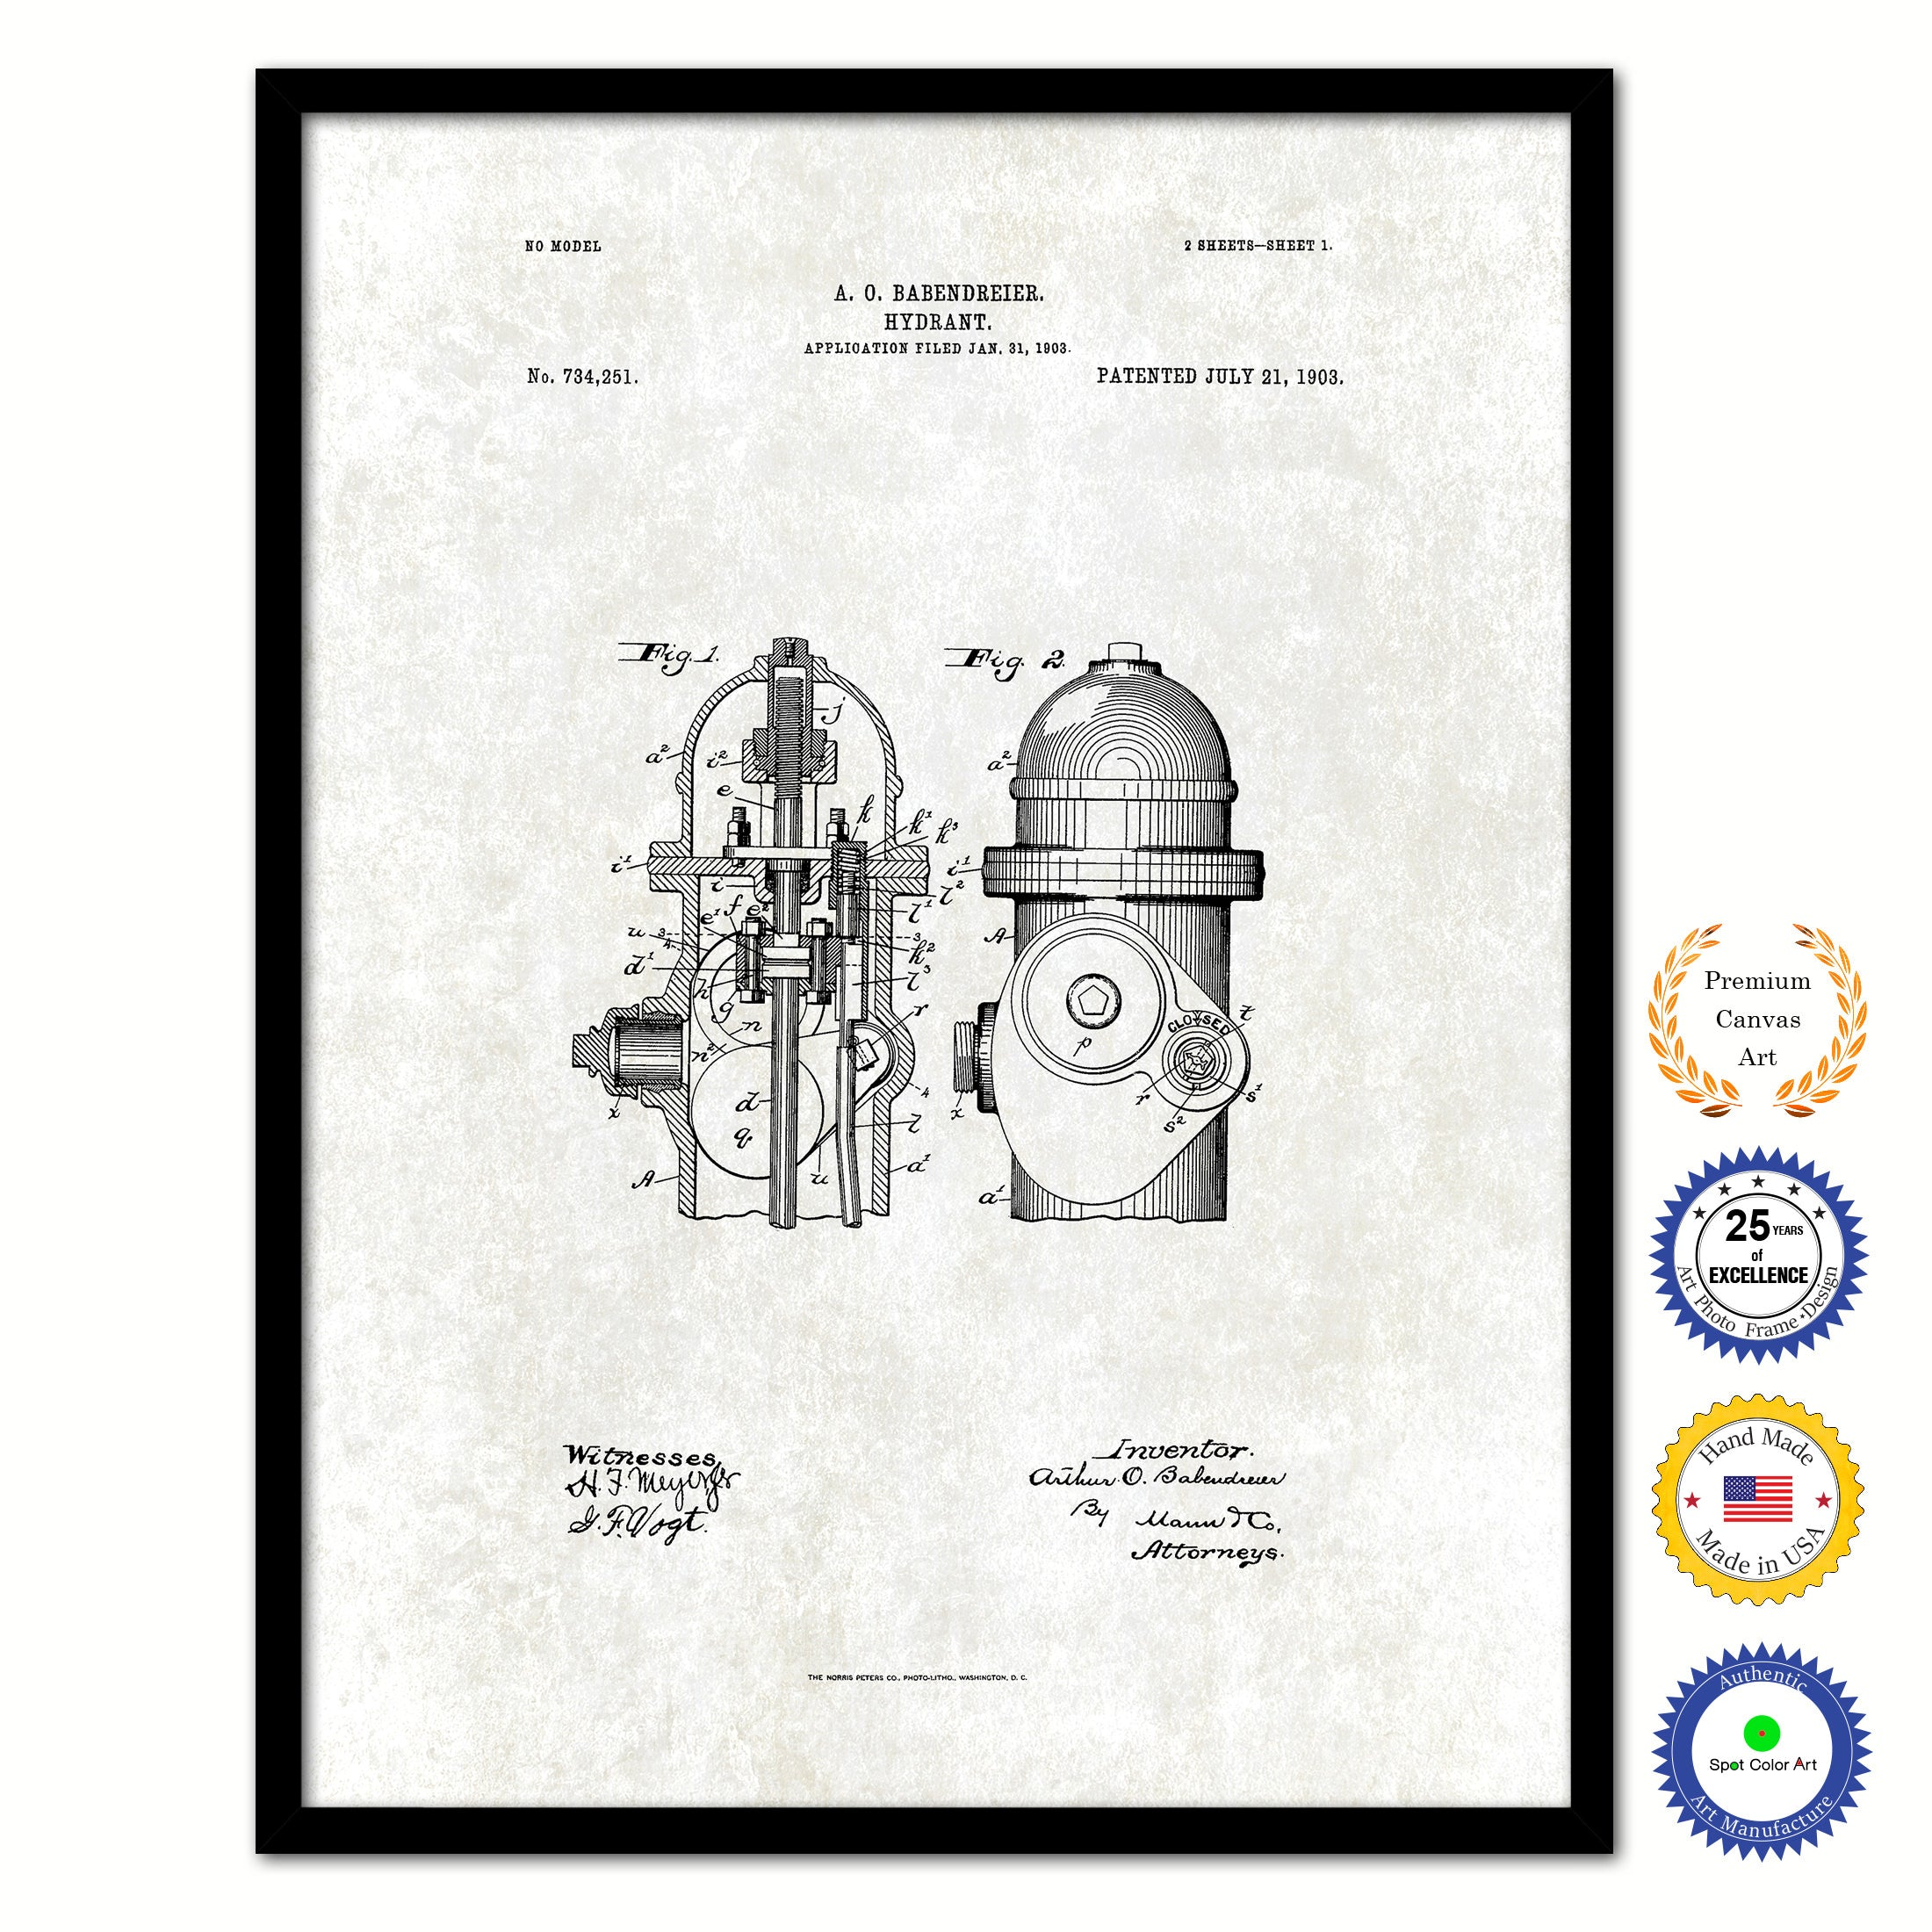 1903 Firefighter Hydrant Vintage Patent Artwork Black Framed Canvas Print Home Office Decor Great for Firefighter Fireman Firewoman